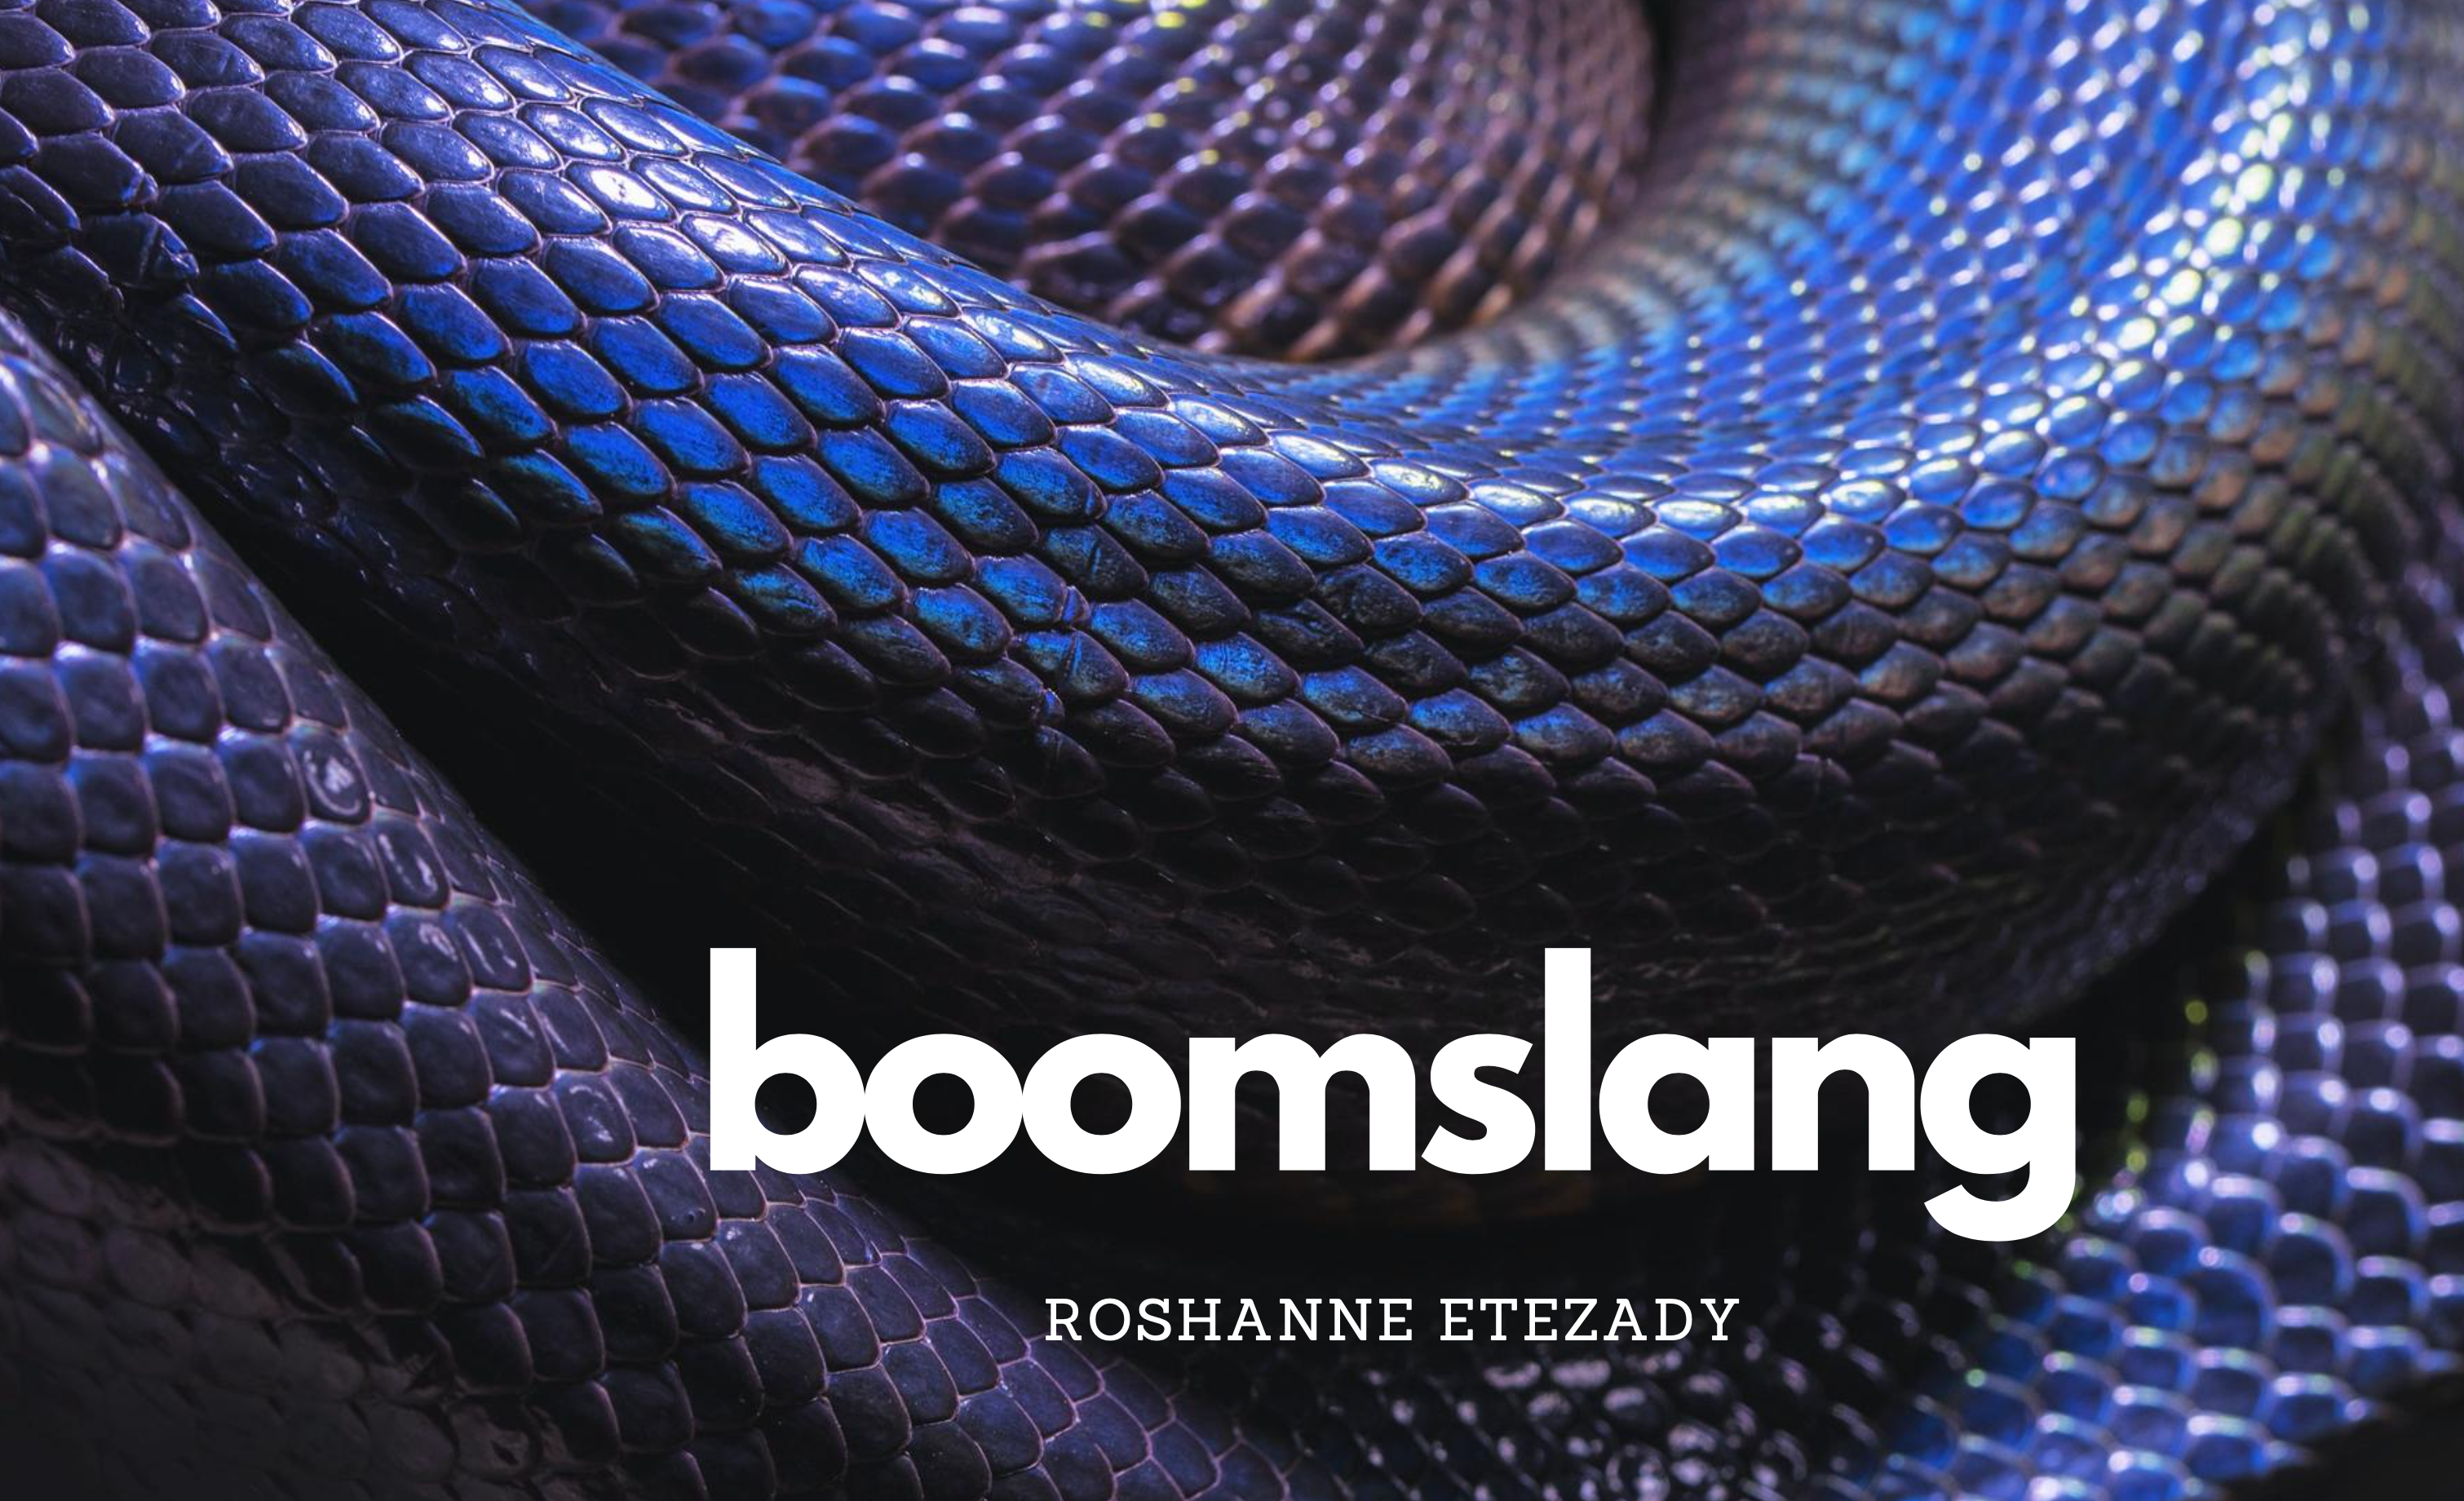 Boomslang by Roshanne Etezady